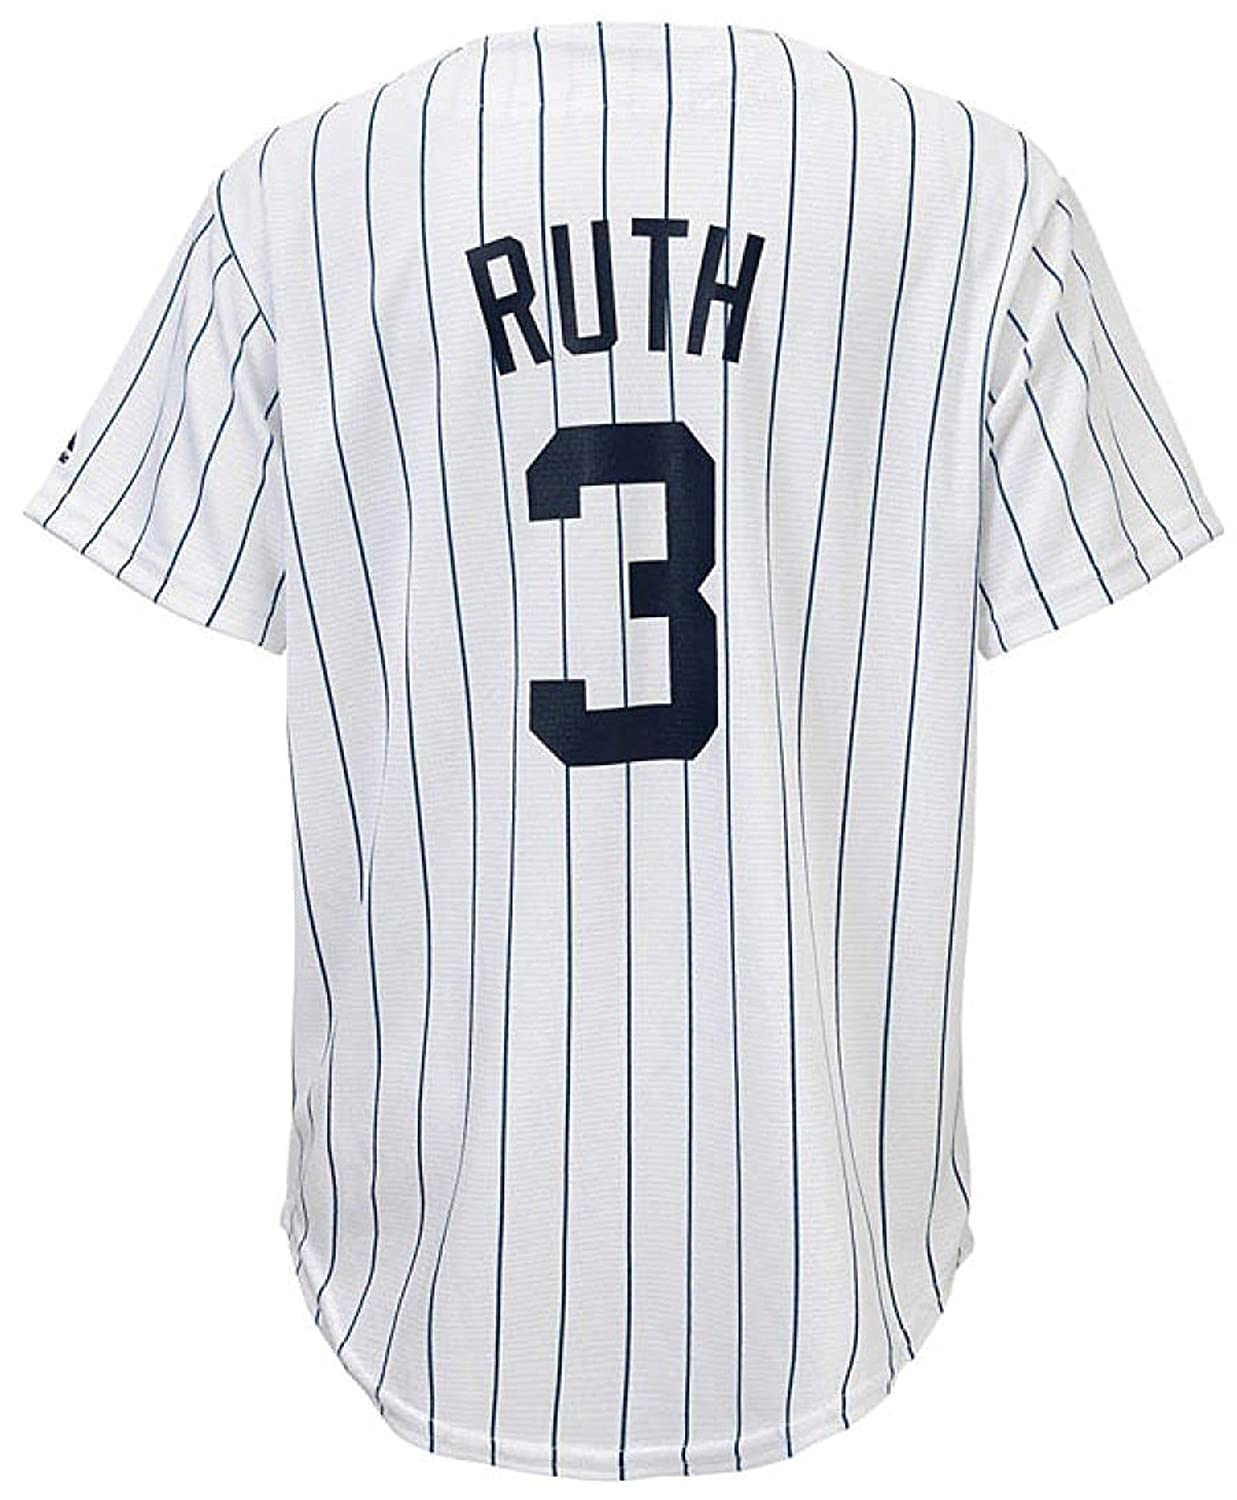 online retailer eb0ba e1cd4 Amazon.com: OuterStuff Babe Ruth New York Yankees White ...